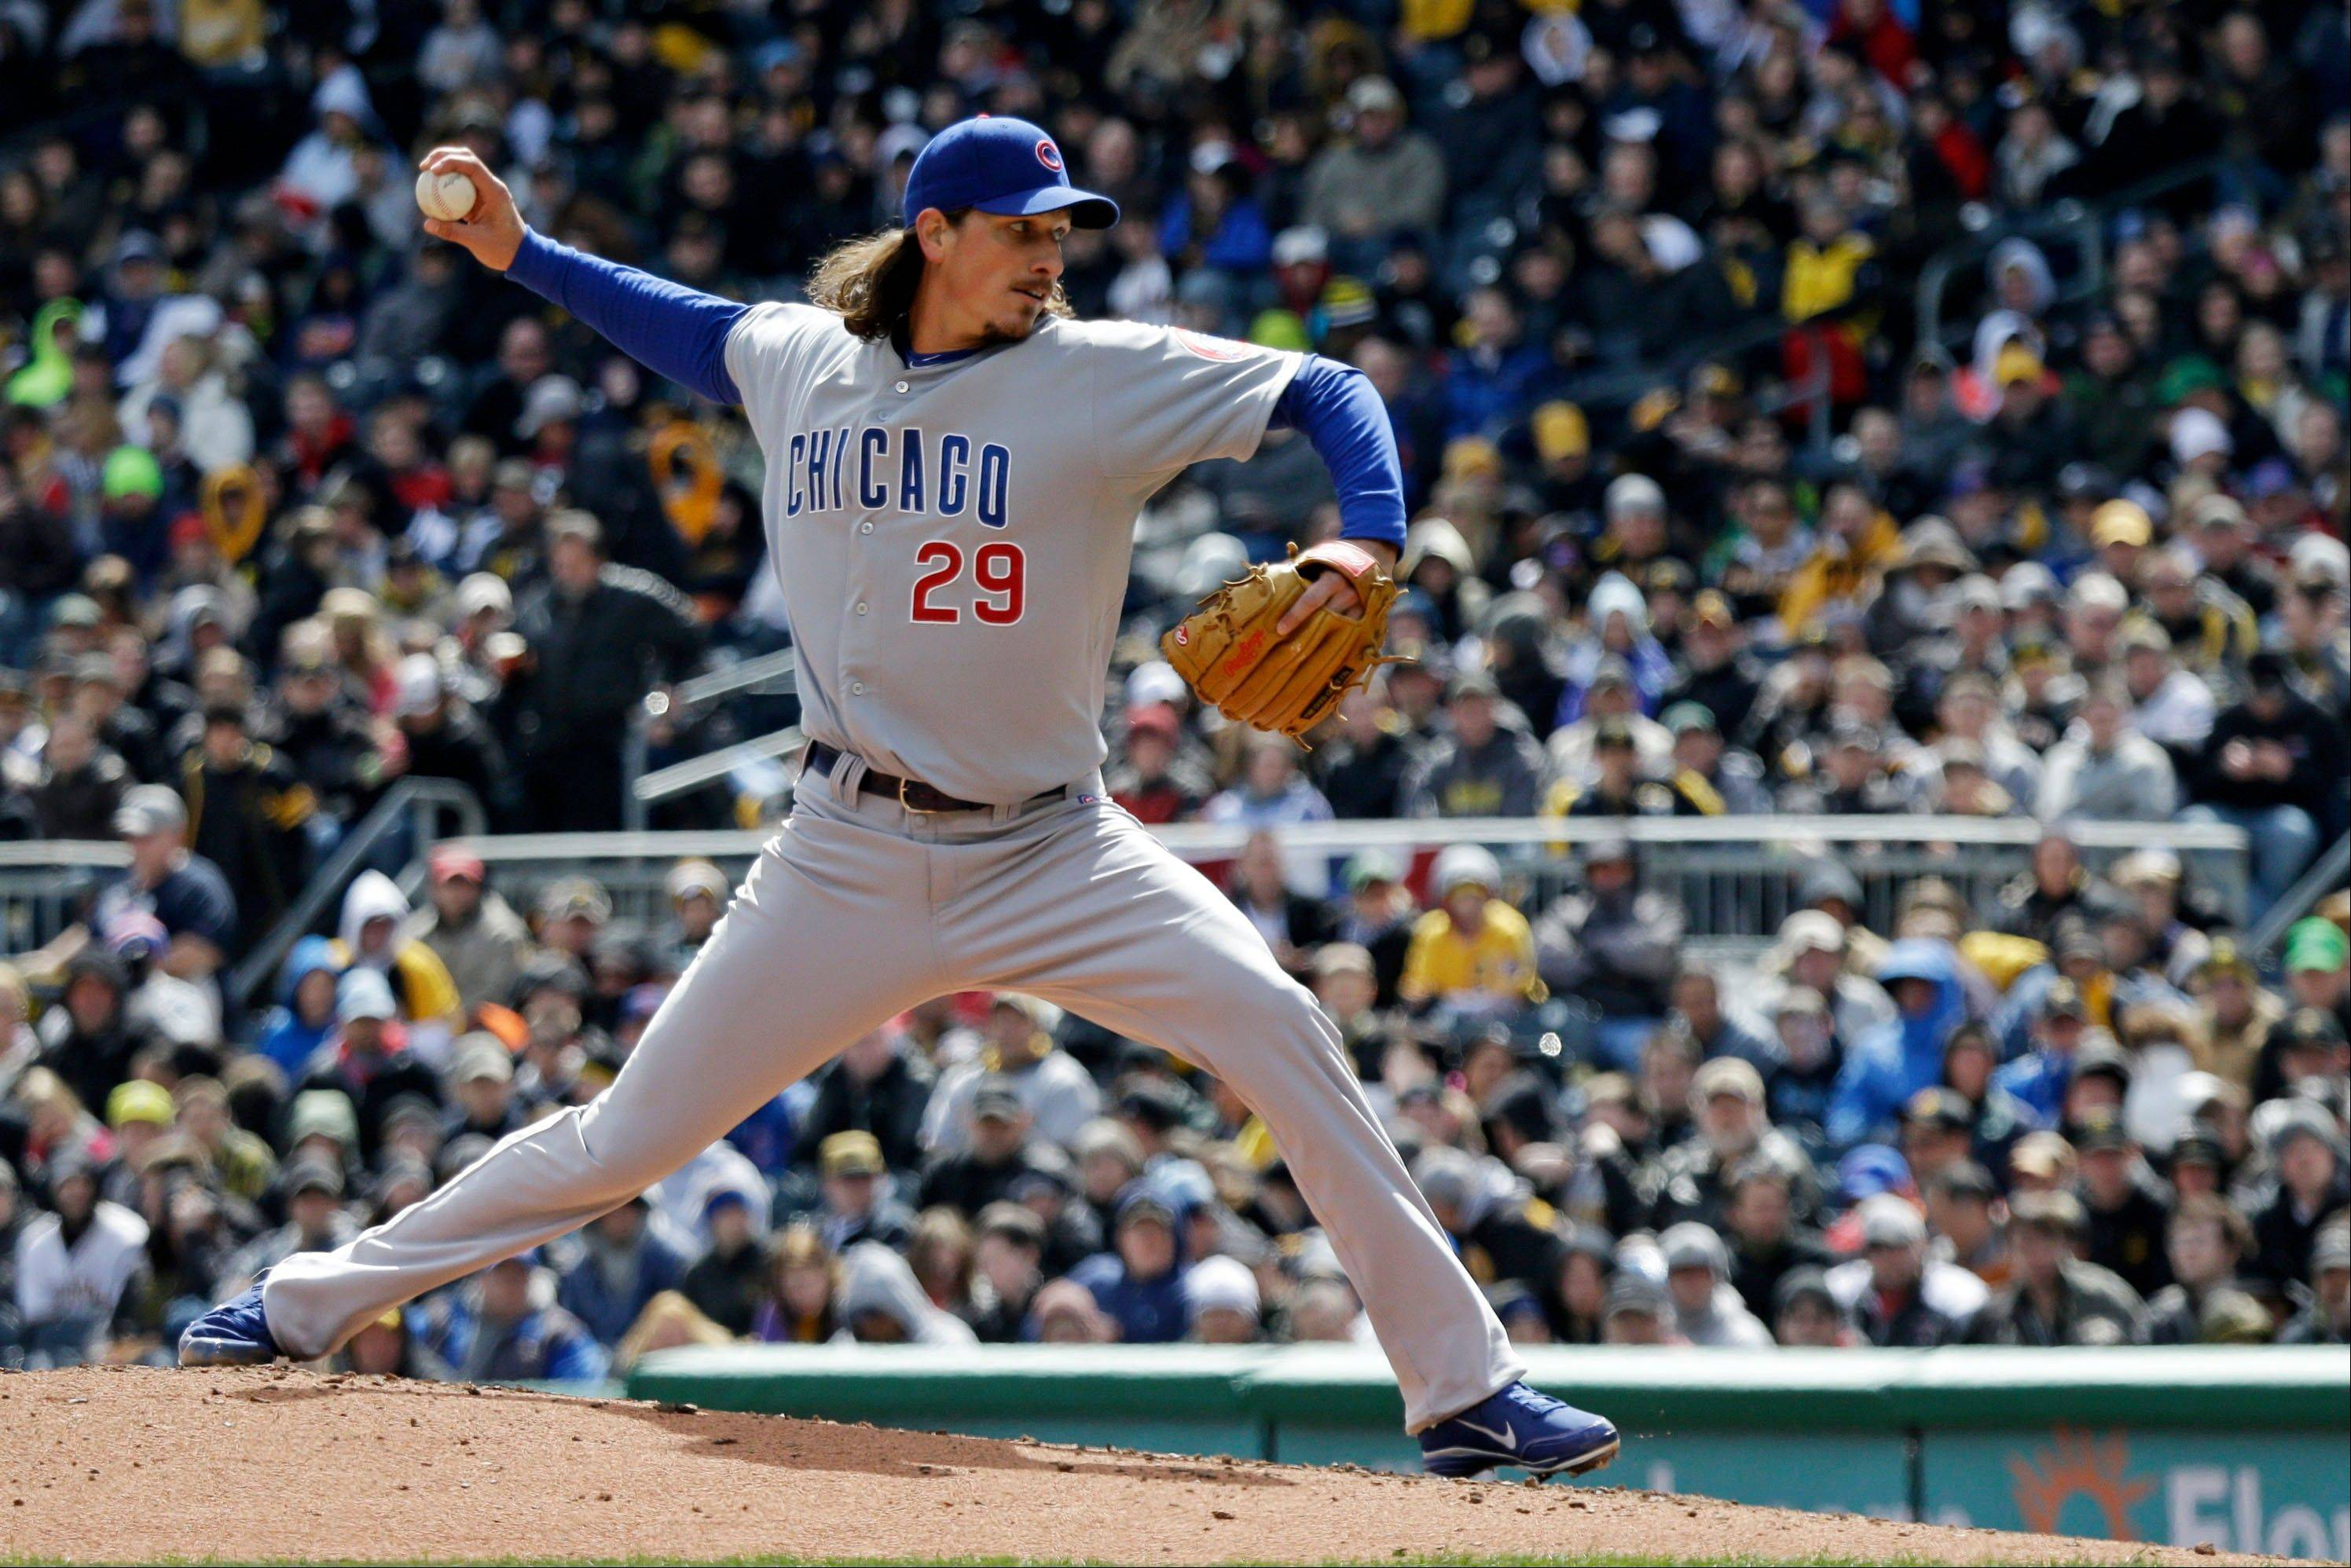 Cubs' Samardzija continues to progress as a 'pitcher'